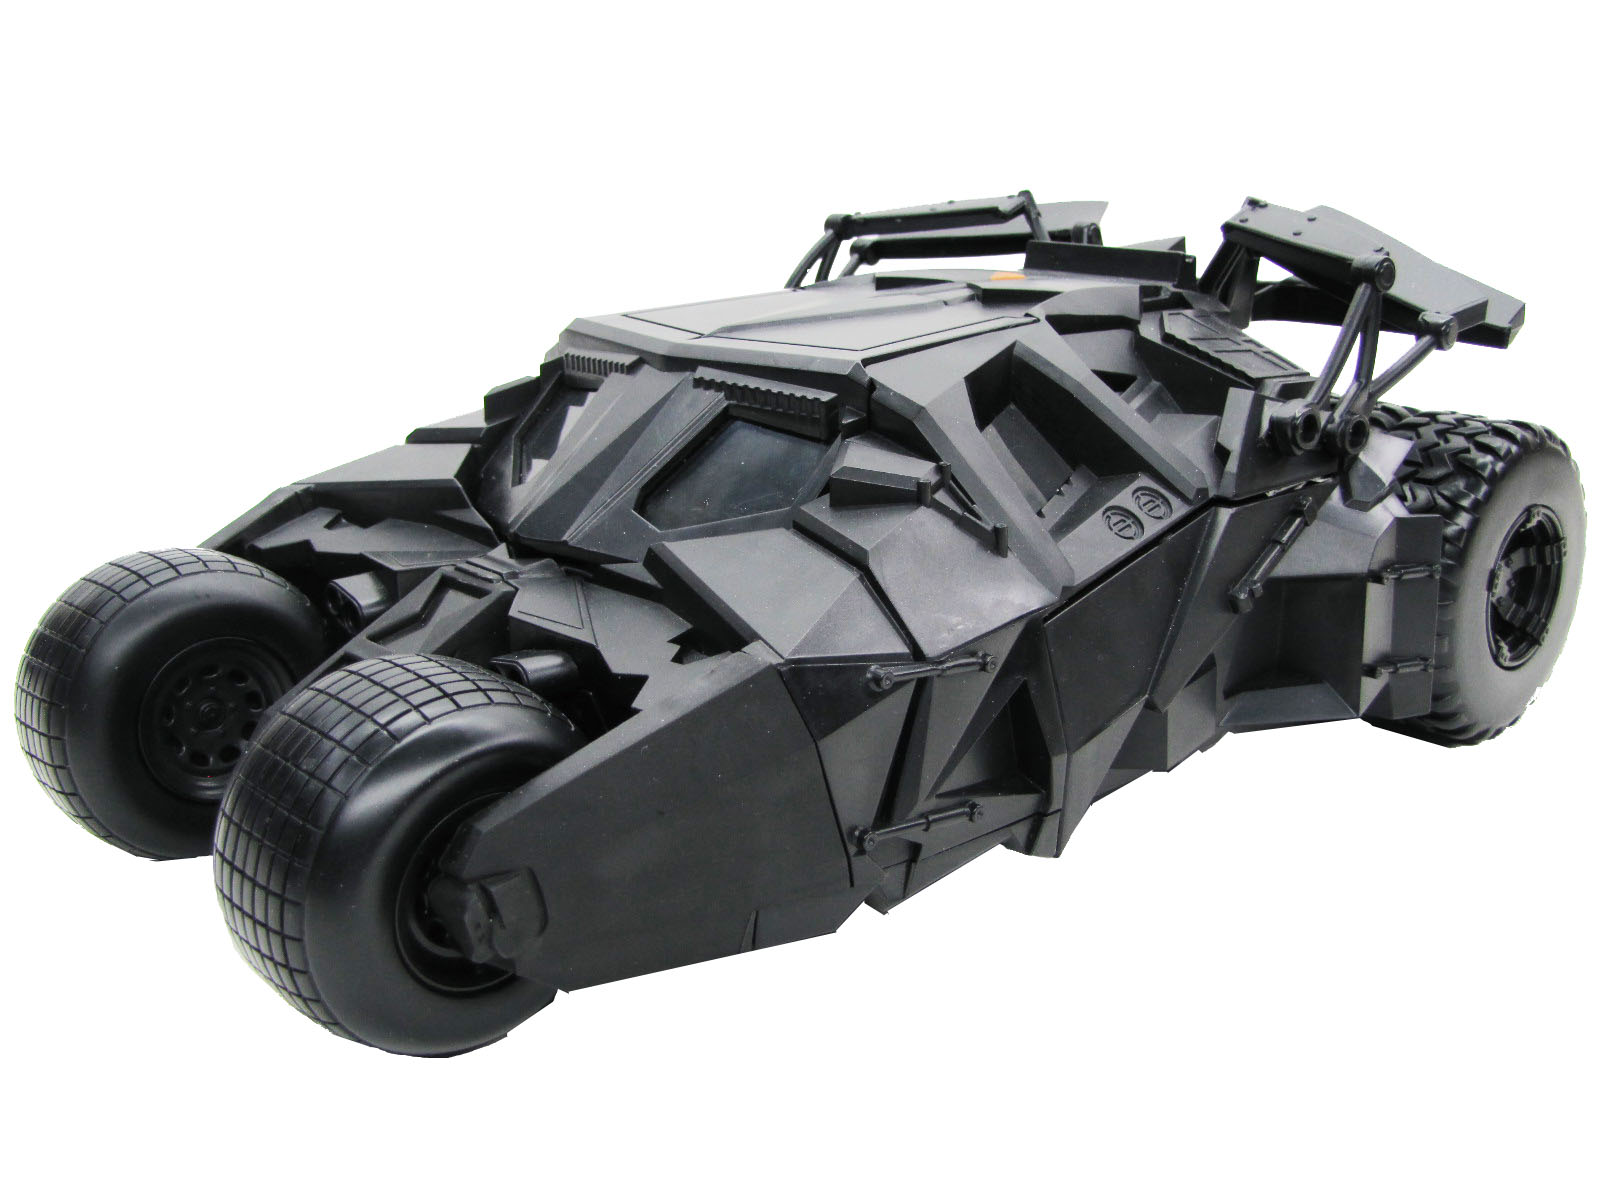 Batman Begins Movie Masters Tumbler Batmobile Complete